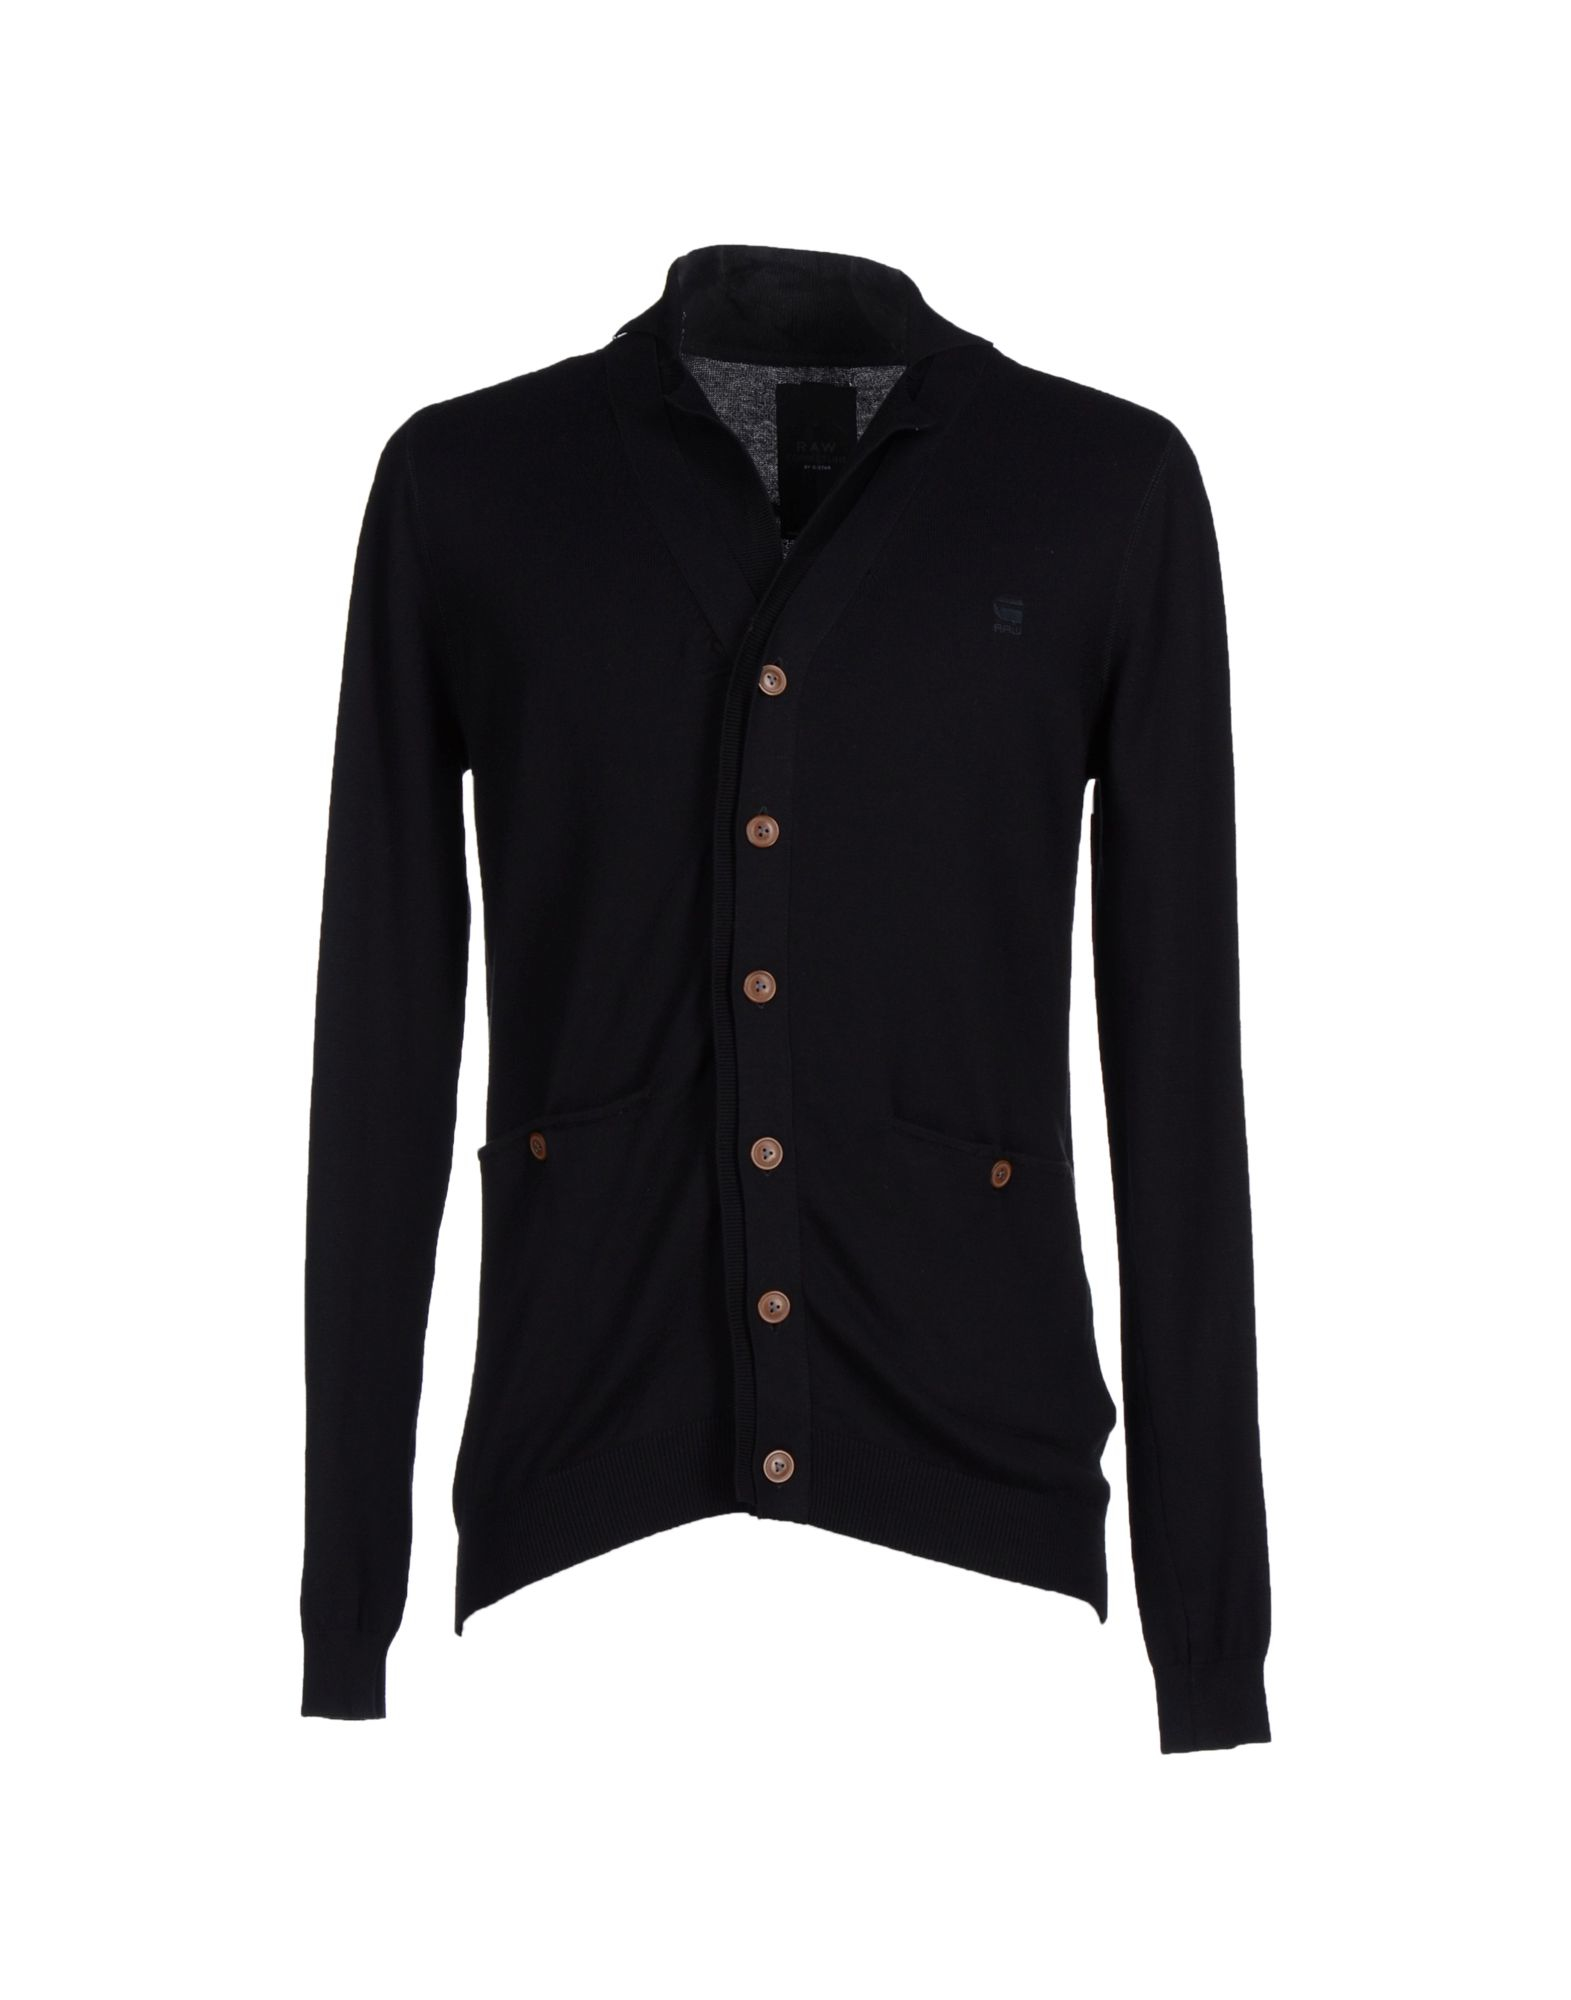 g star raw cardigan in black for men lyst. Black Bedroom Furniture Sets. Home Design Ideas